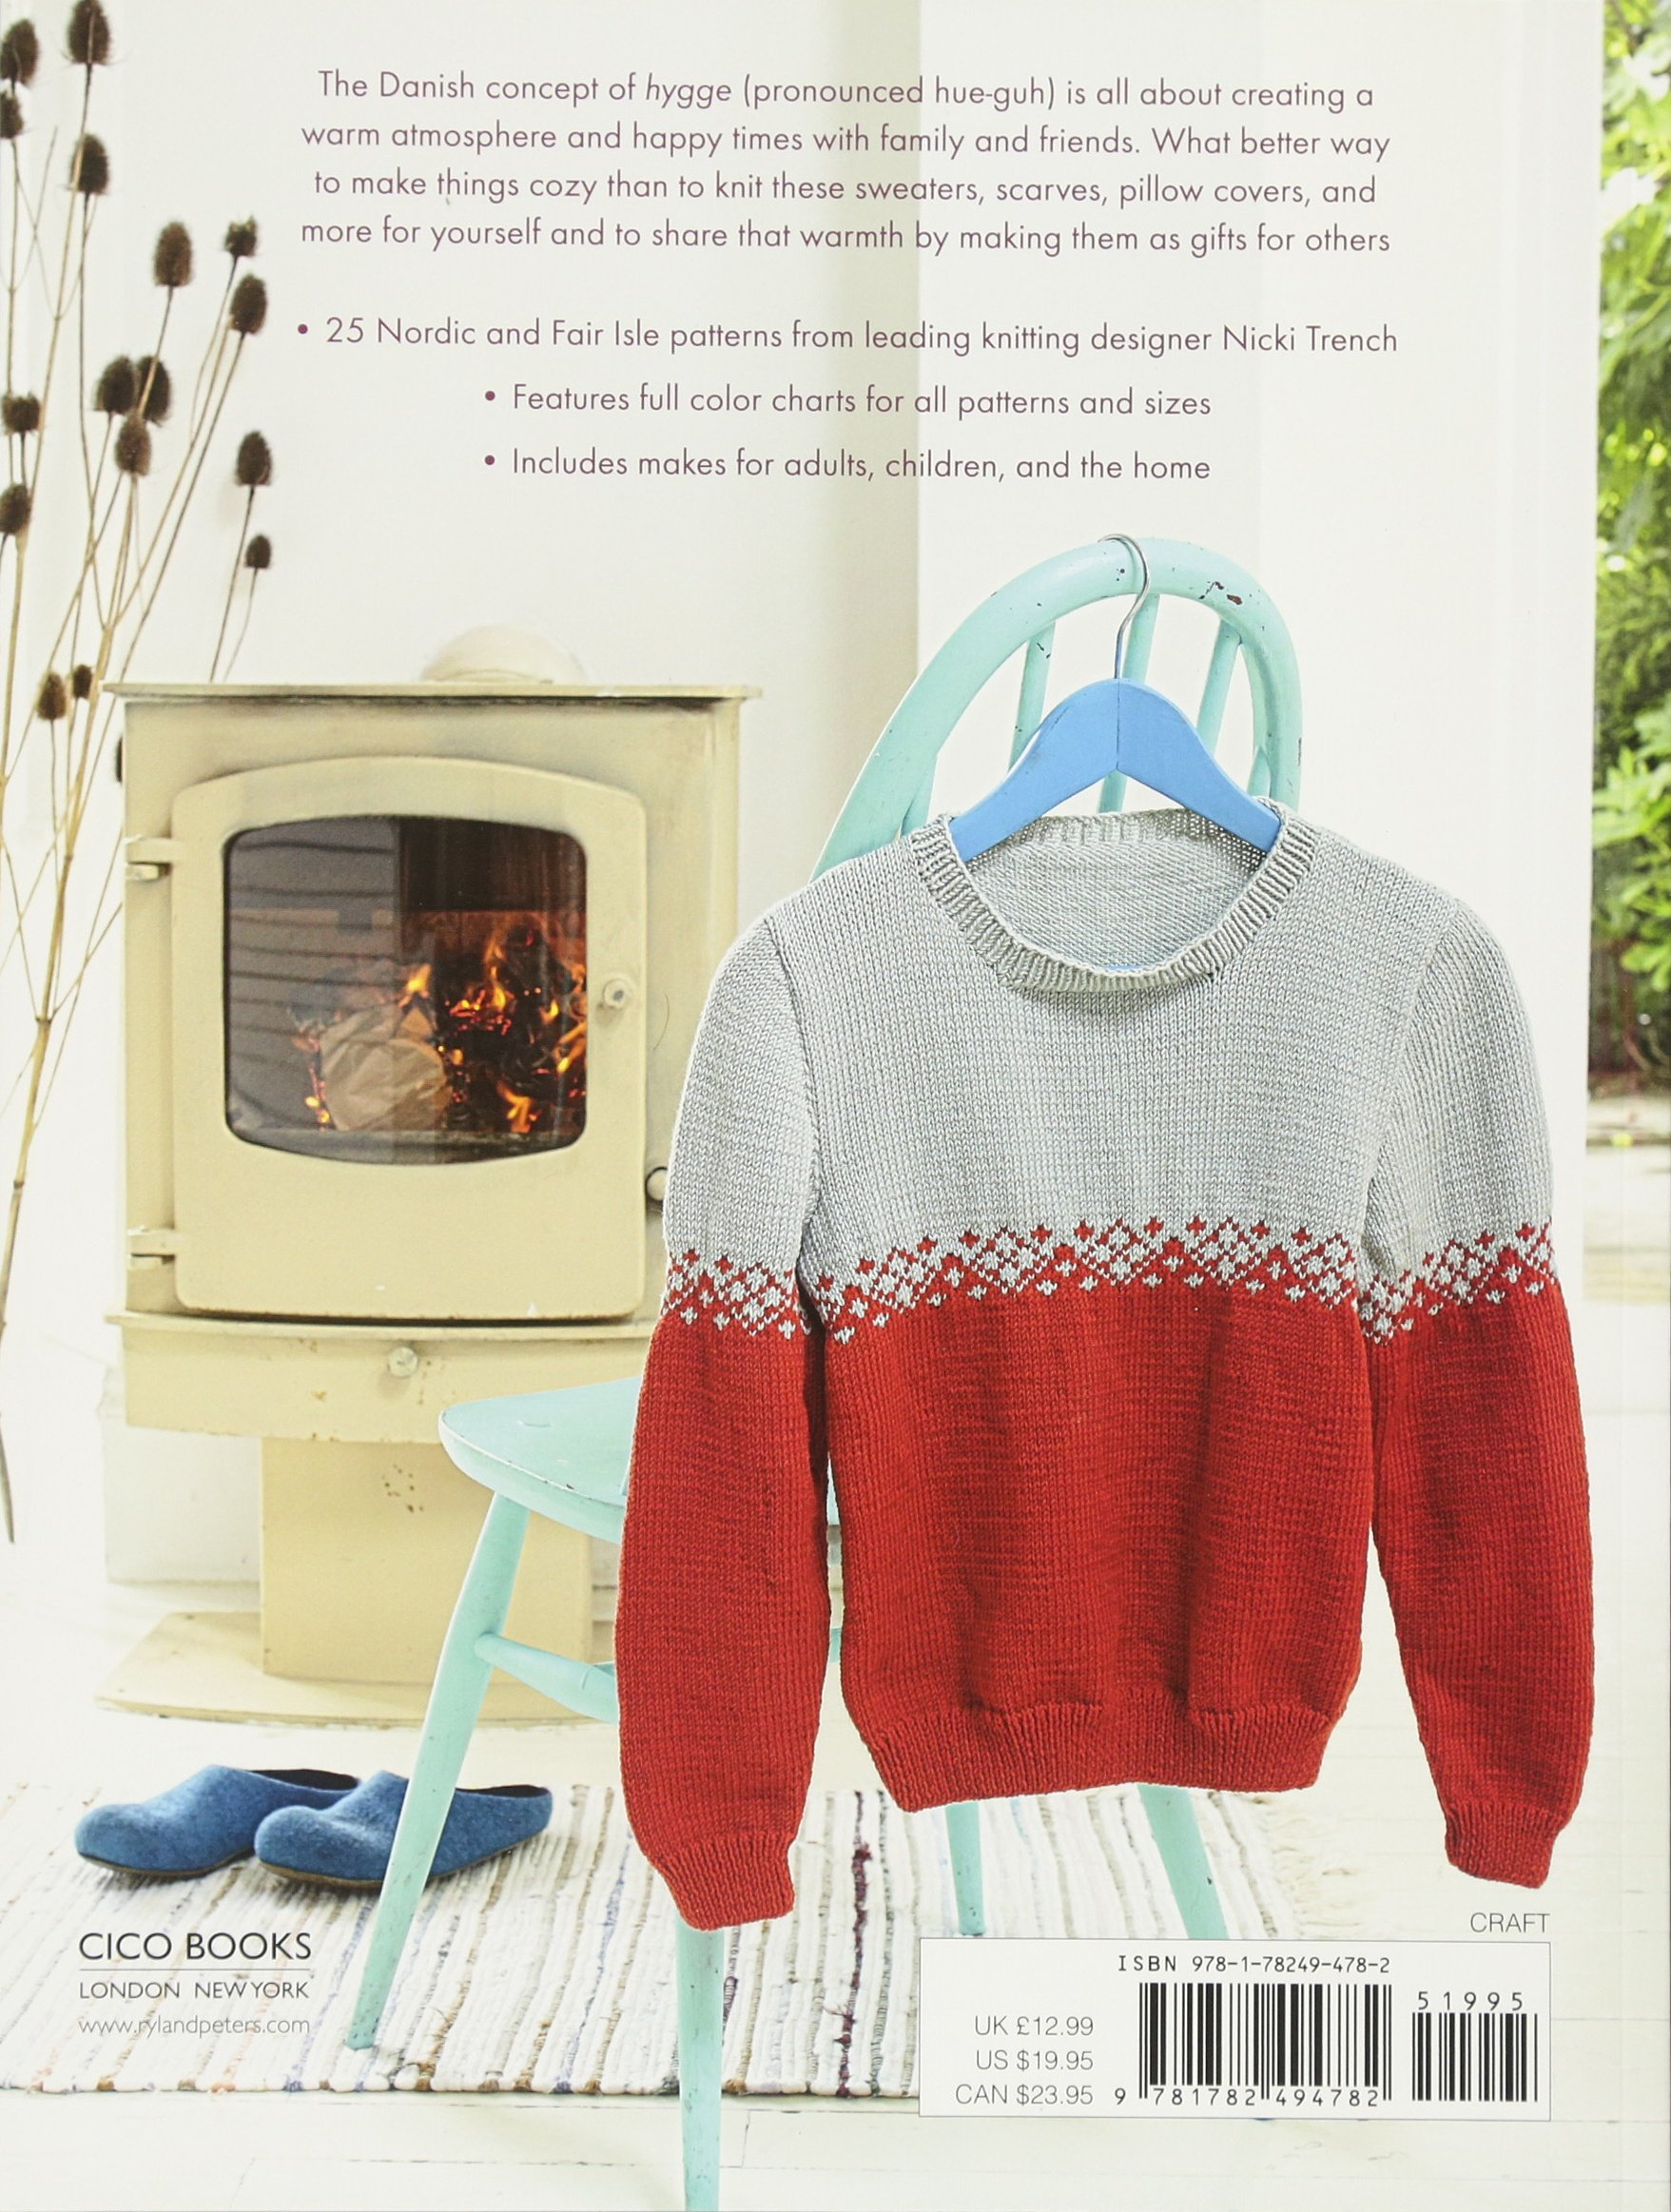 ea83eb8418a7b Hygge Knits  Nordic and Fair Isle sweaters